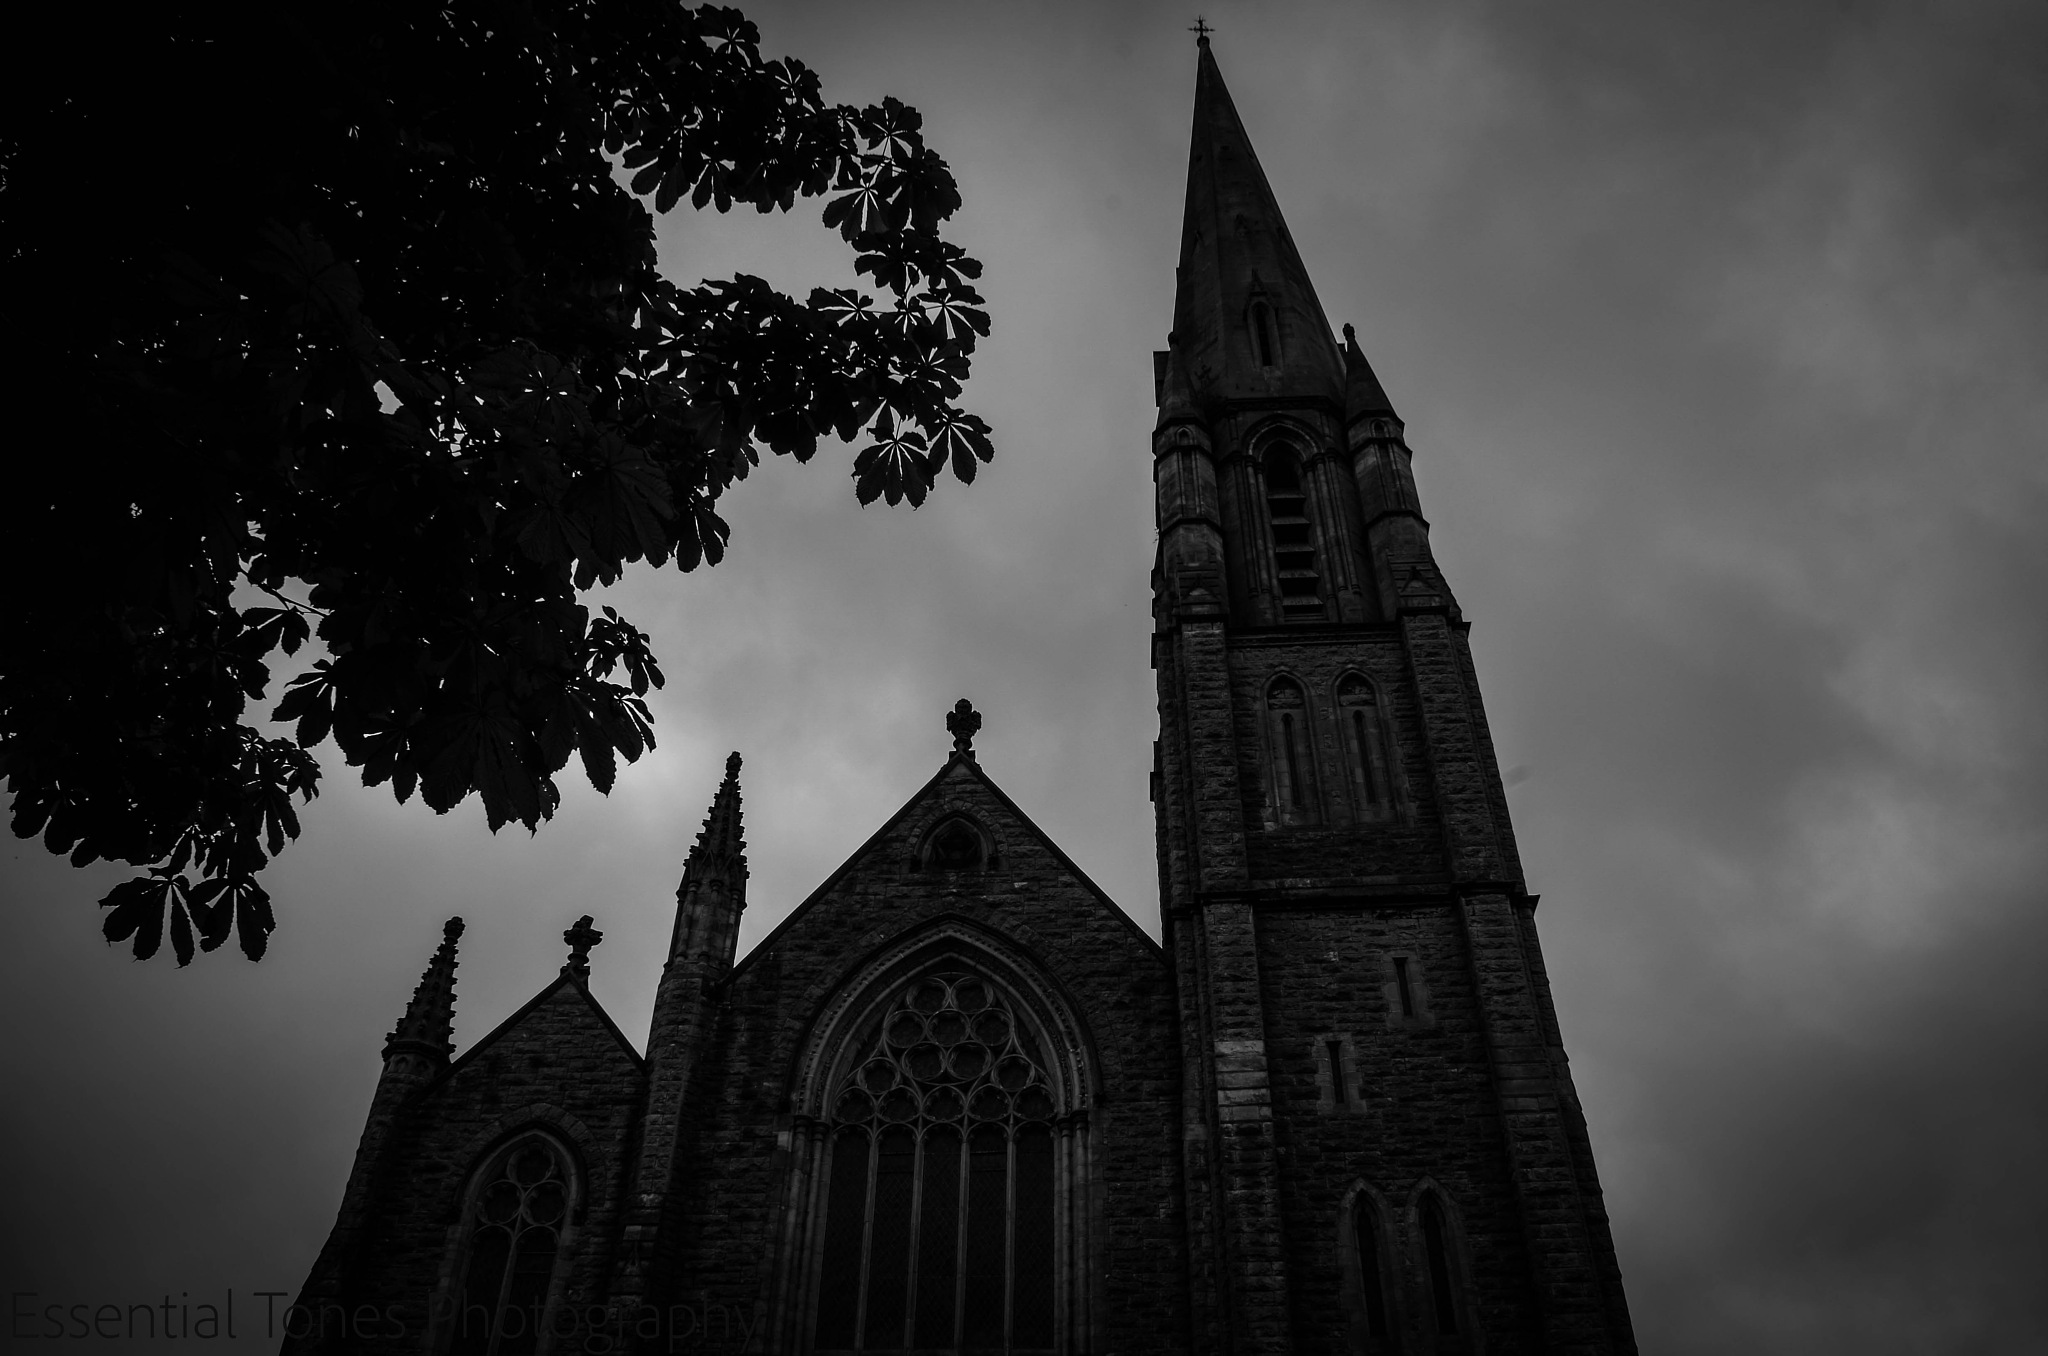 Armagh Horror by essentialtonesphotography